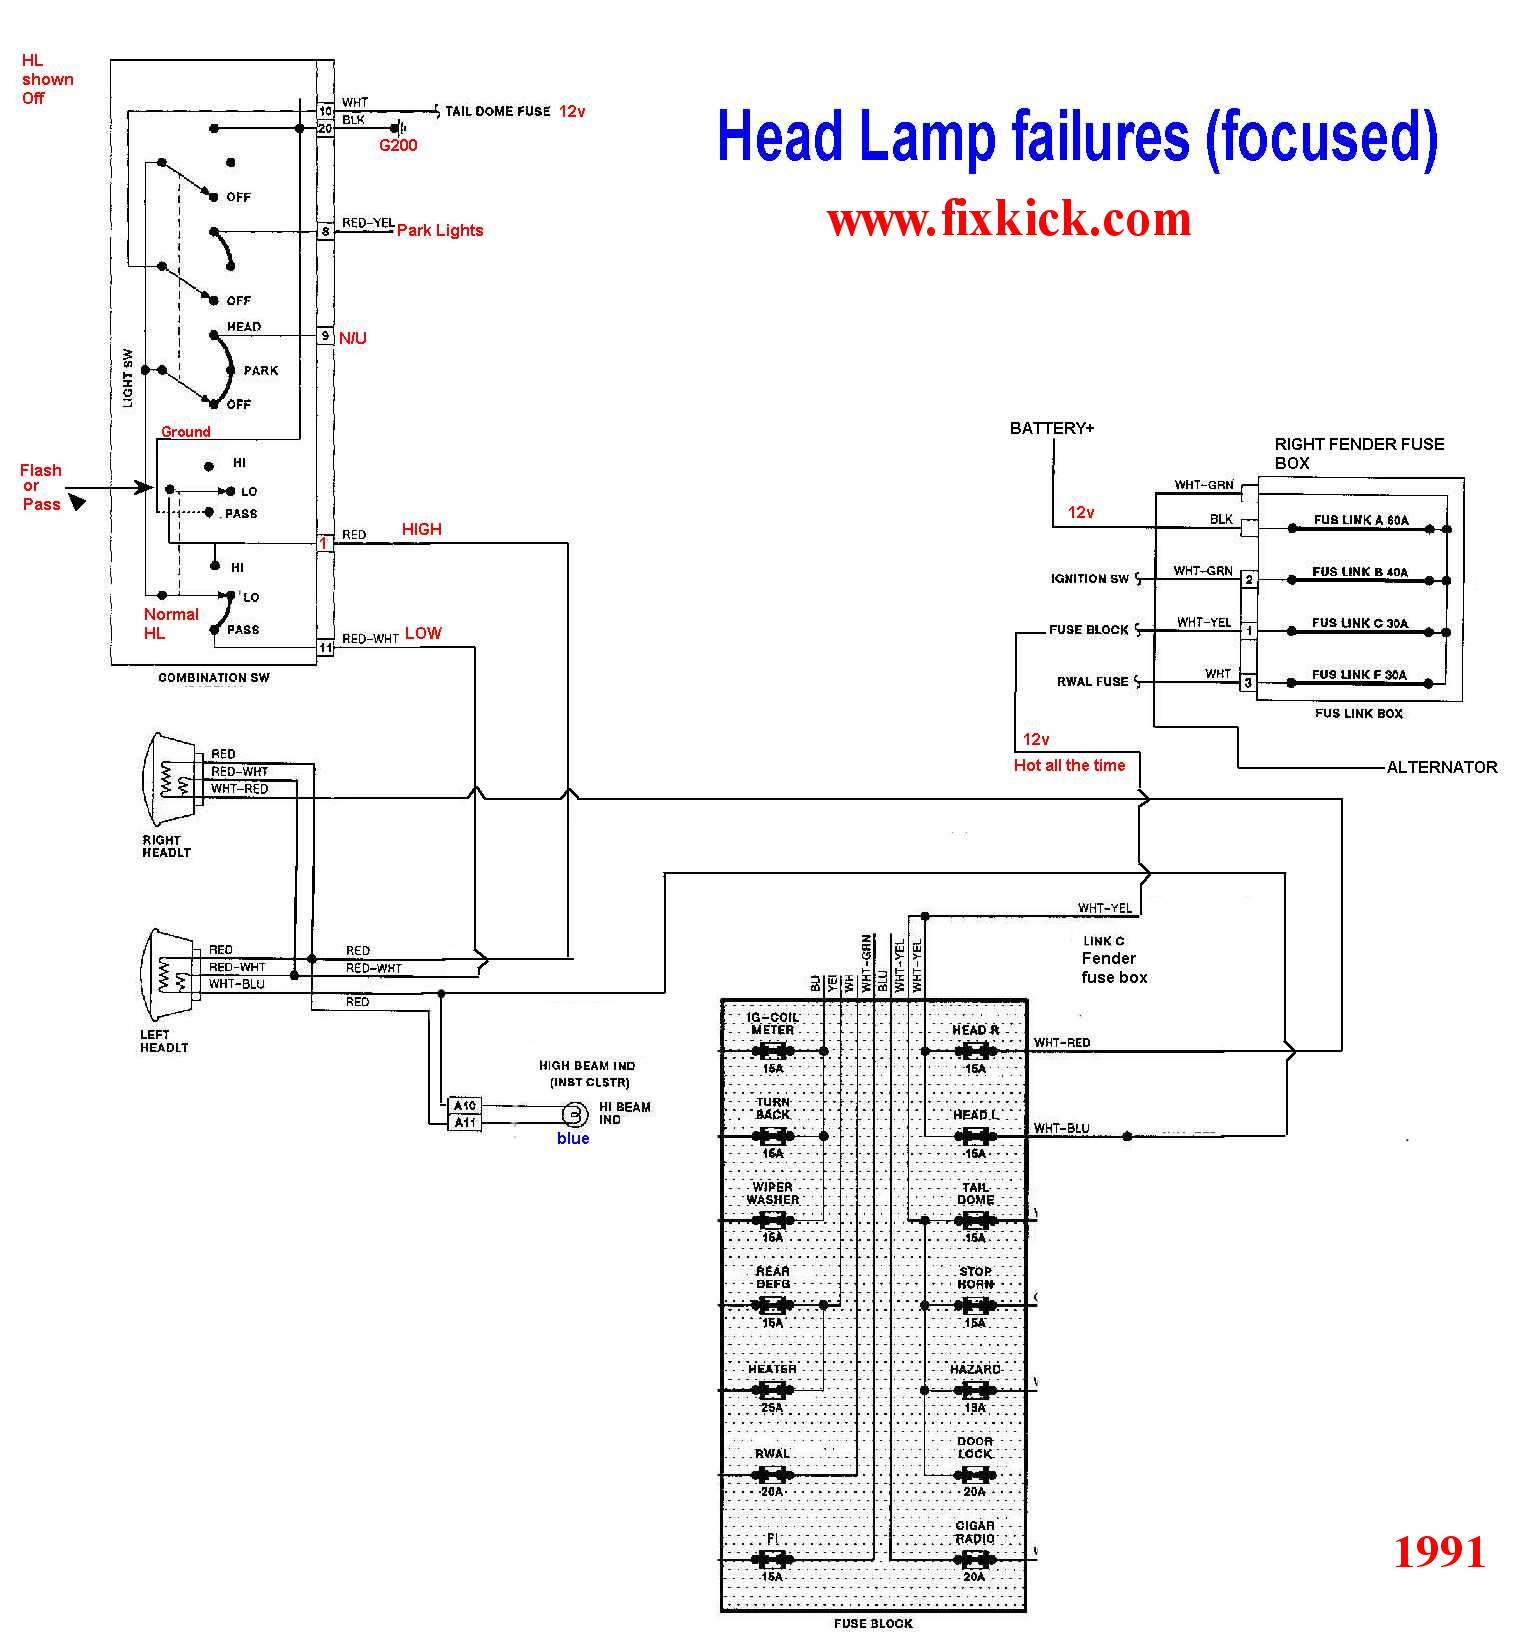 HL1A schematics to run engine 1994 geo tracker fuse block diagram at edmiracle.co